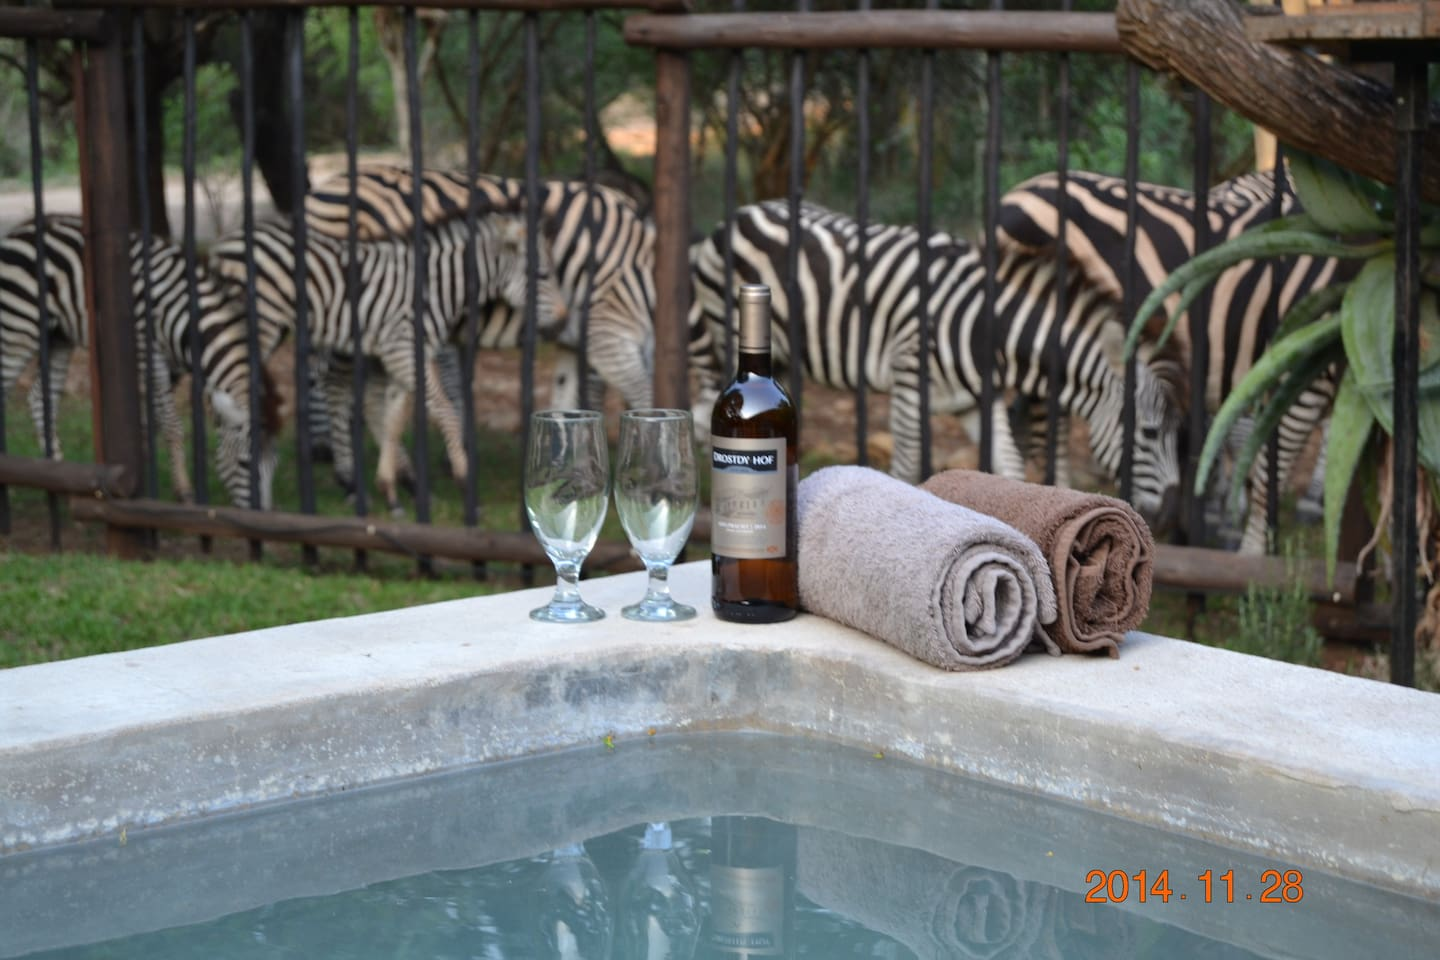 Cool down in the pool and watch the animals walk past the house and stop for a nibble on the green grass.